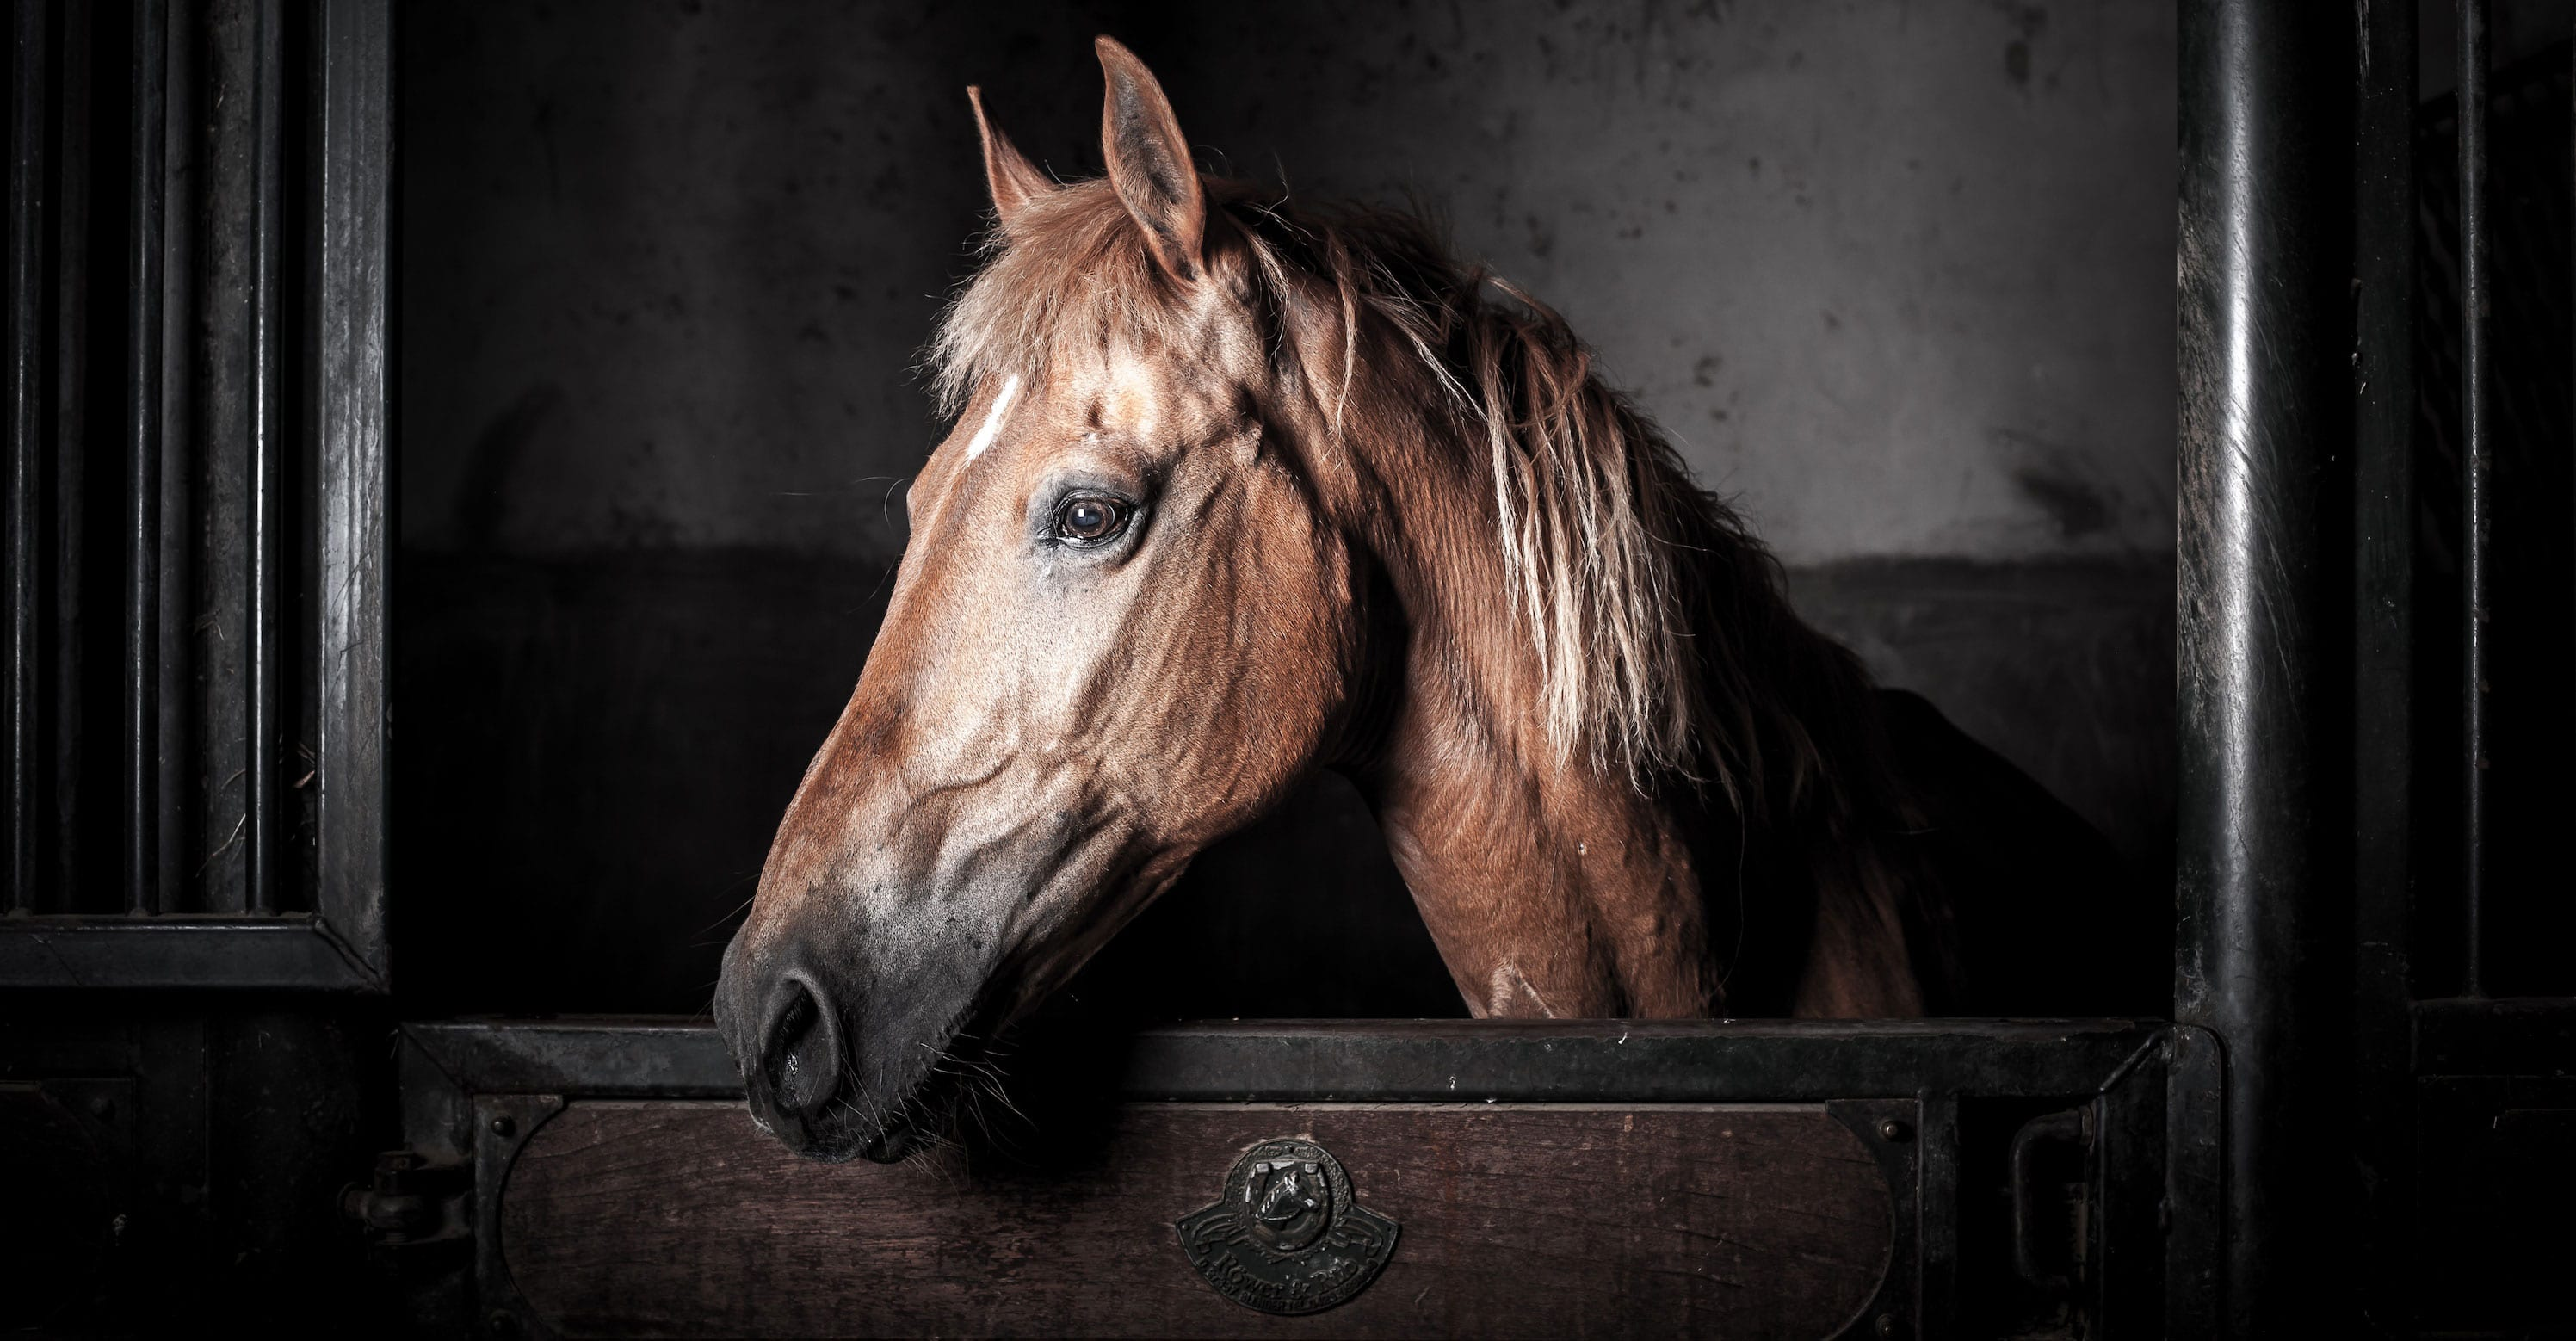 Horse in Stall - Close up on head